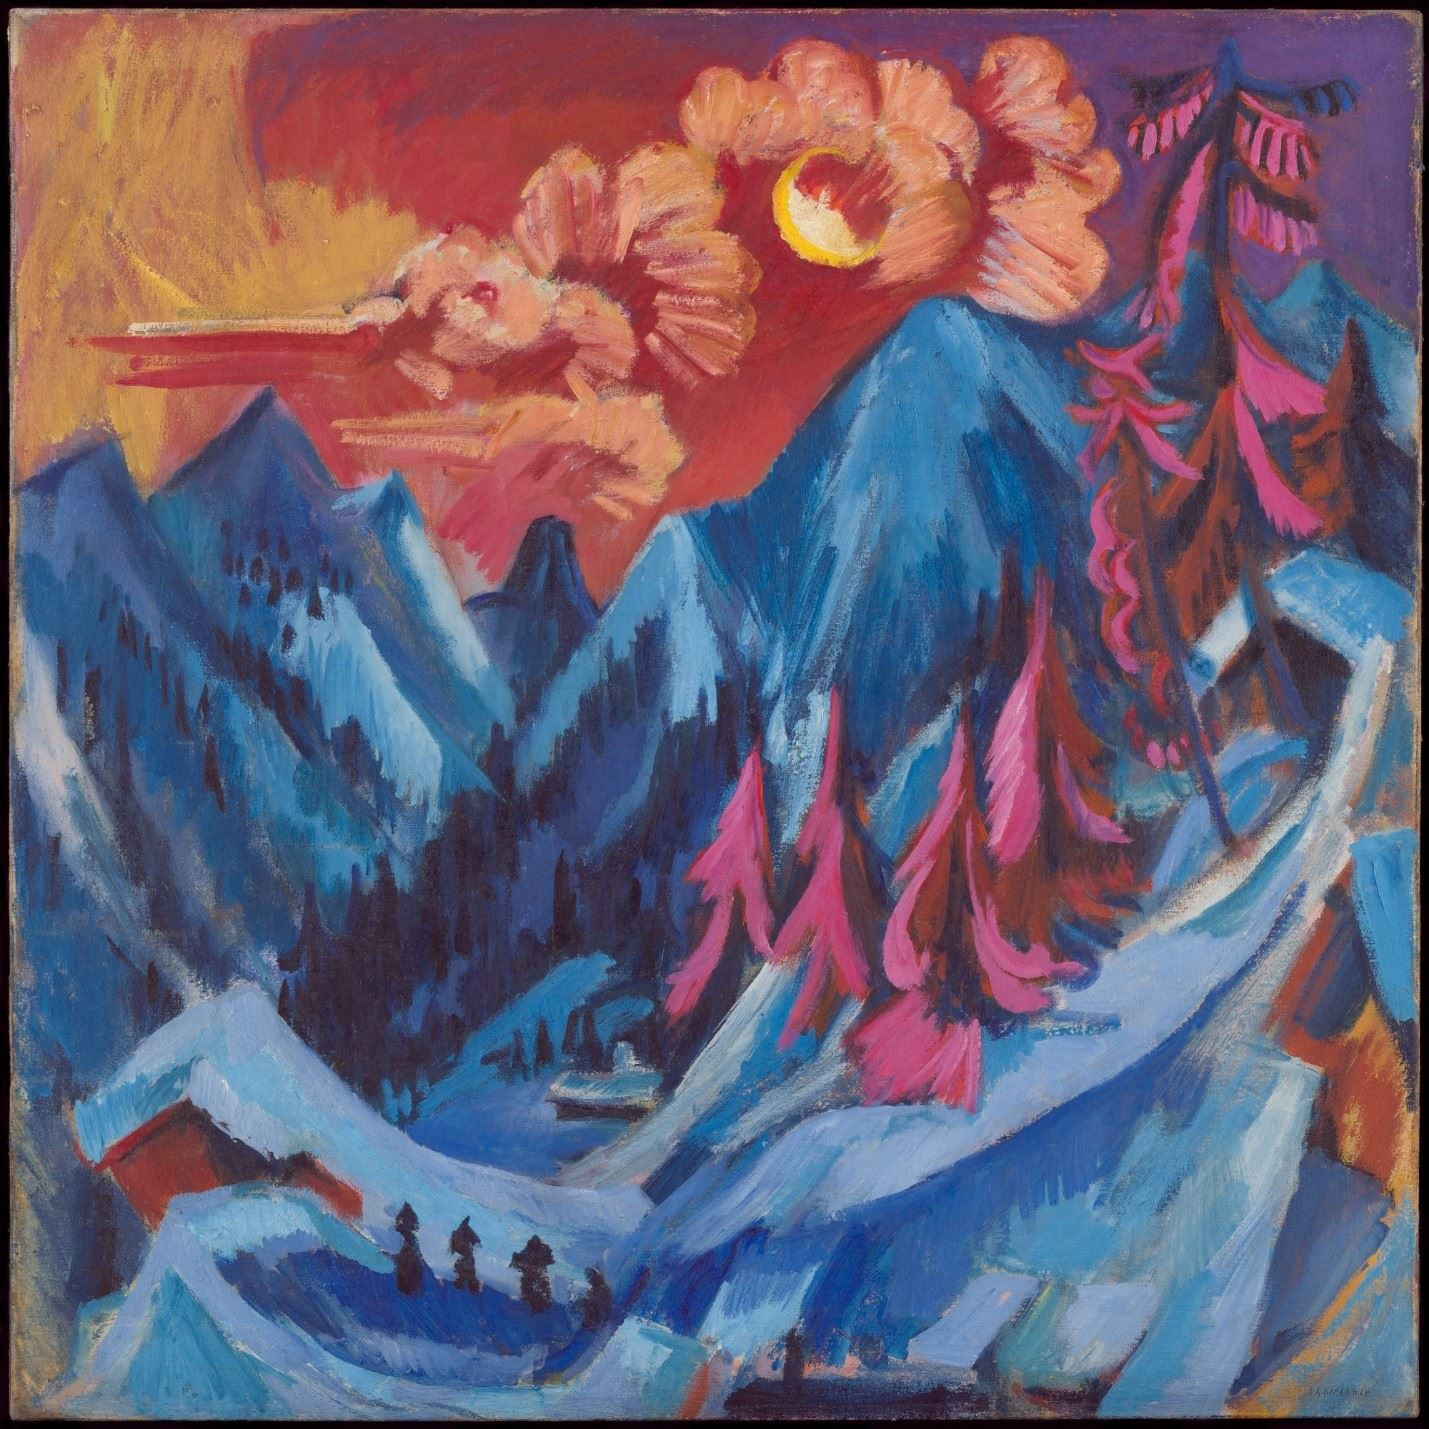 Winter Landscape in Moonlight by Ernst Ludwig Kirchner